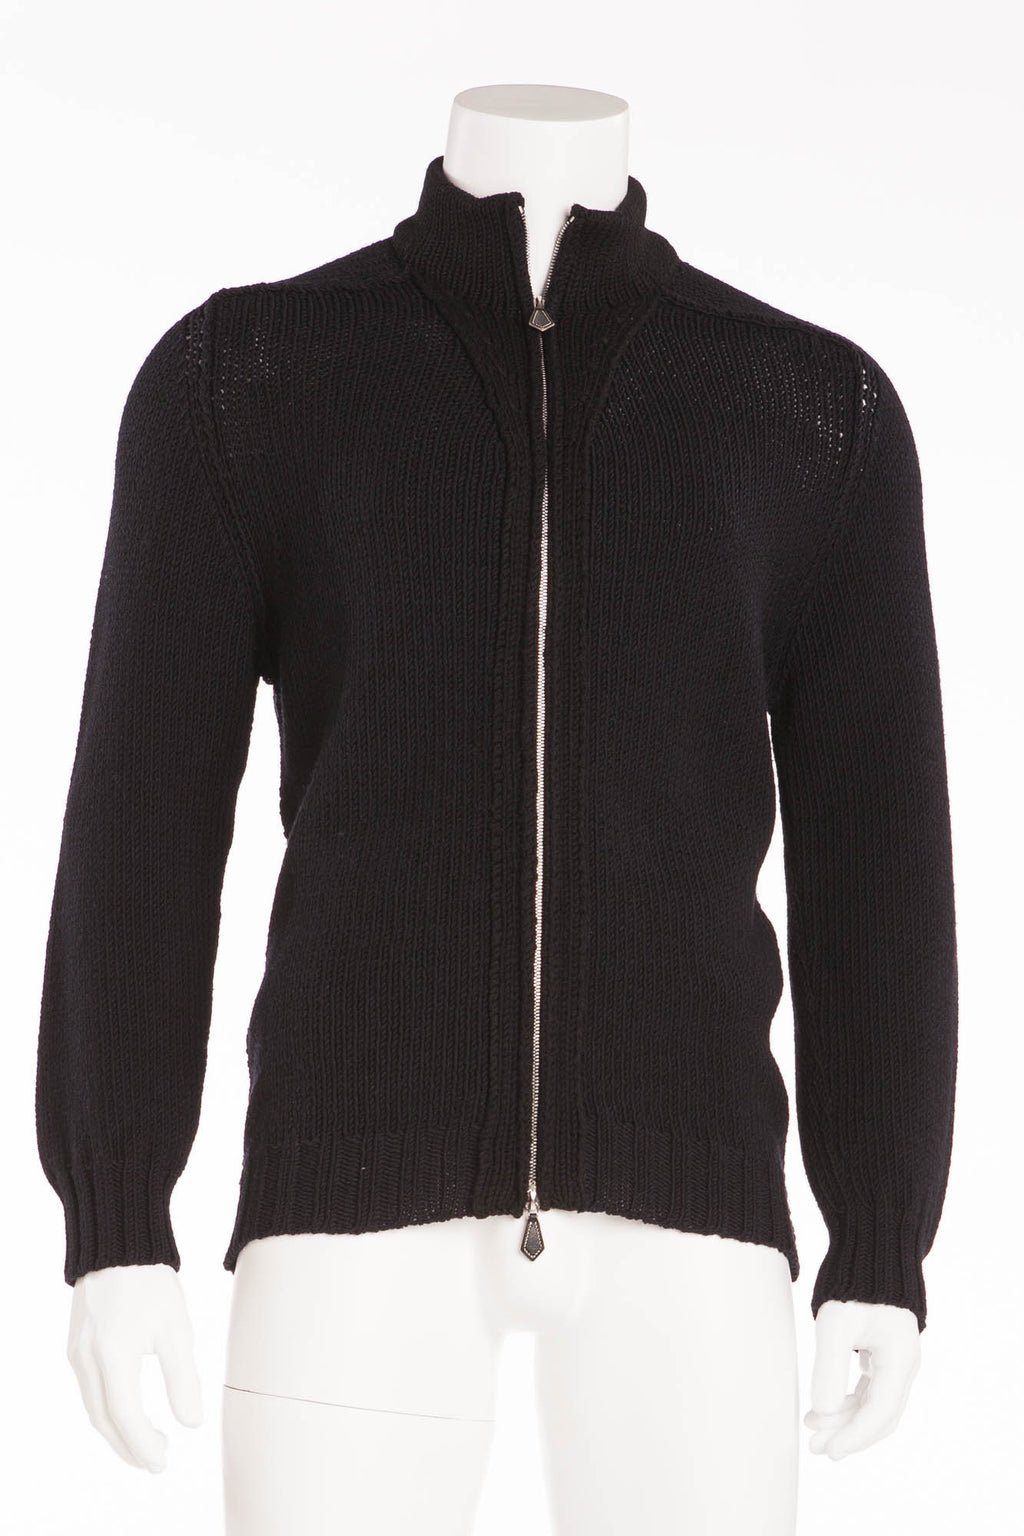 Authentic Hermes - Black Long Sleeve Zip Up Sweater - XL